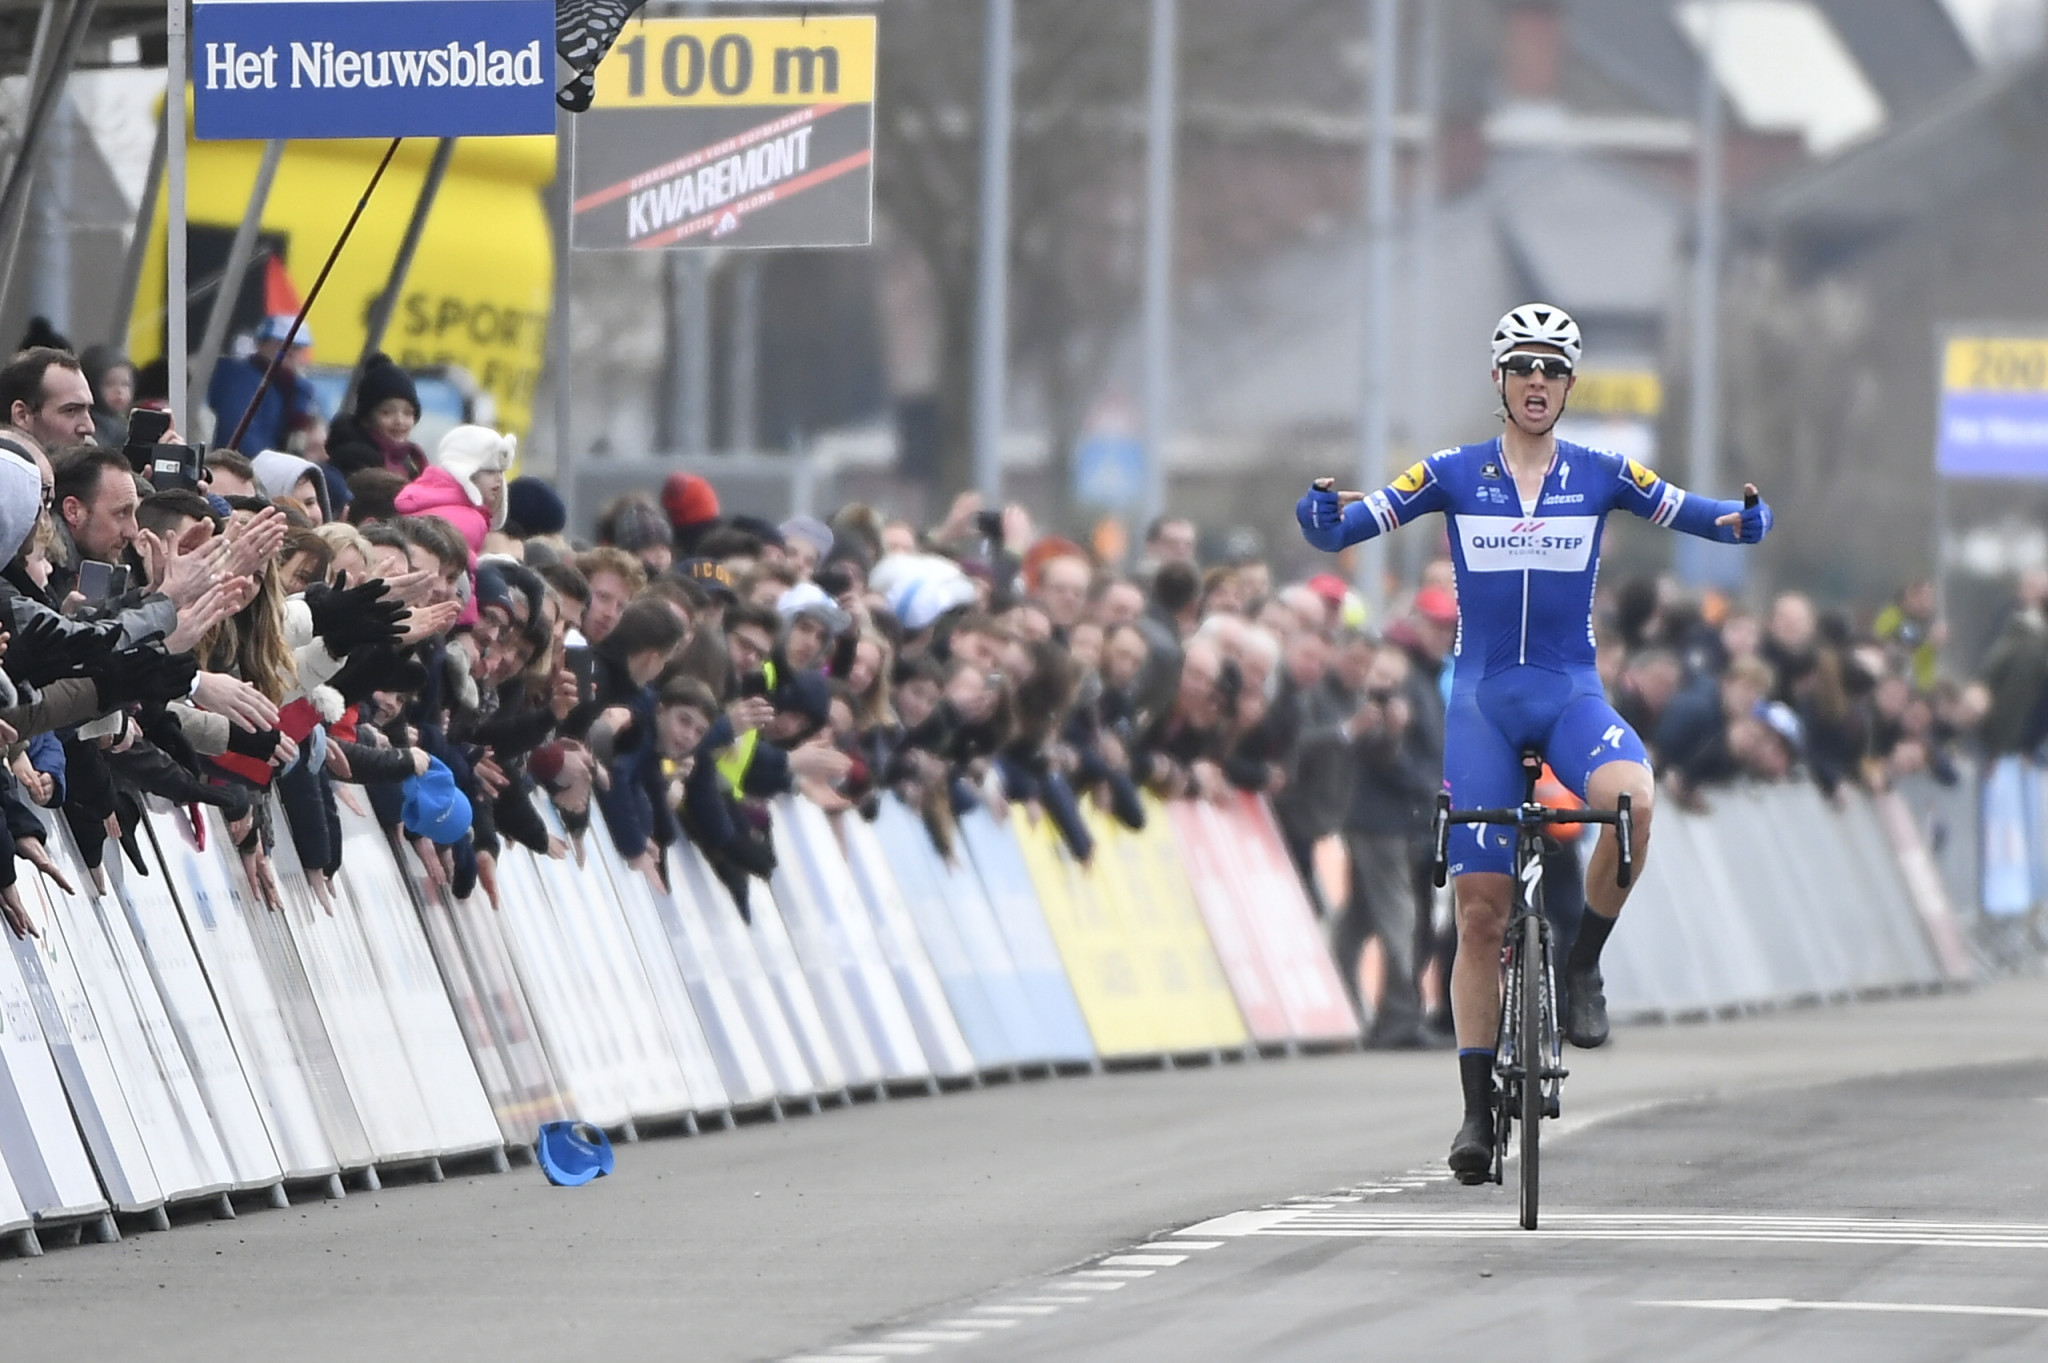 Terpstra takes solo win at E3 Harebeke race in Belgium